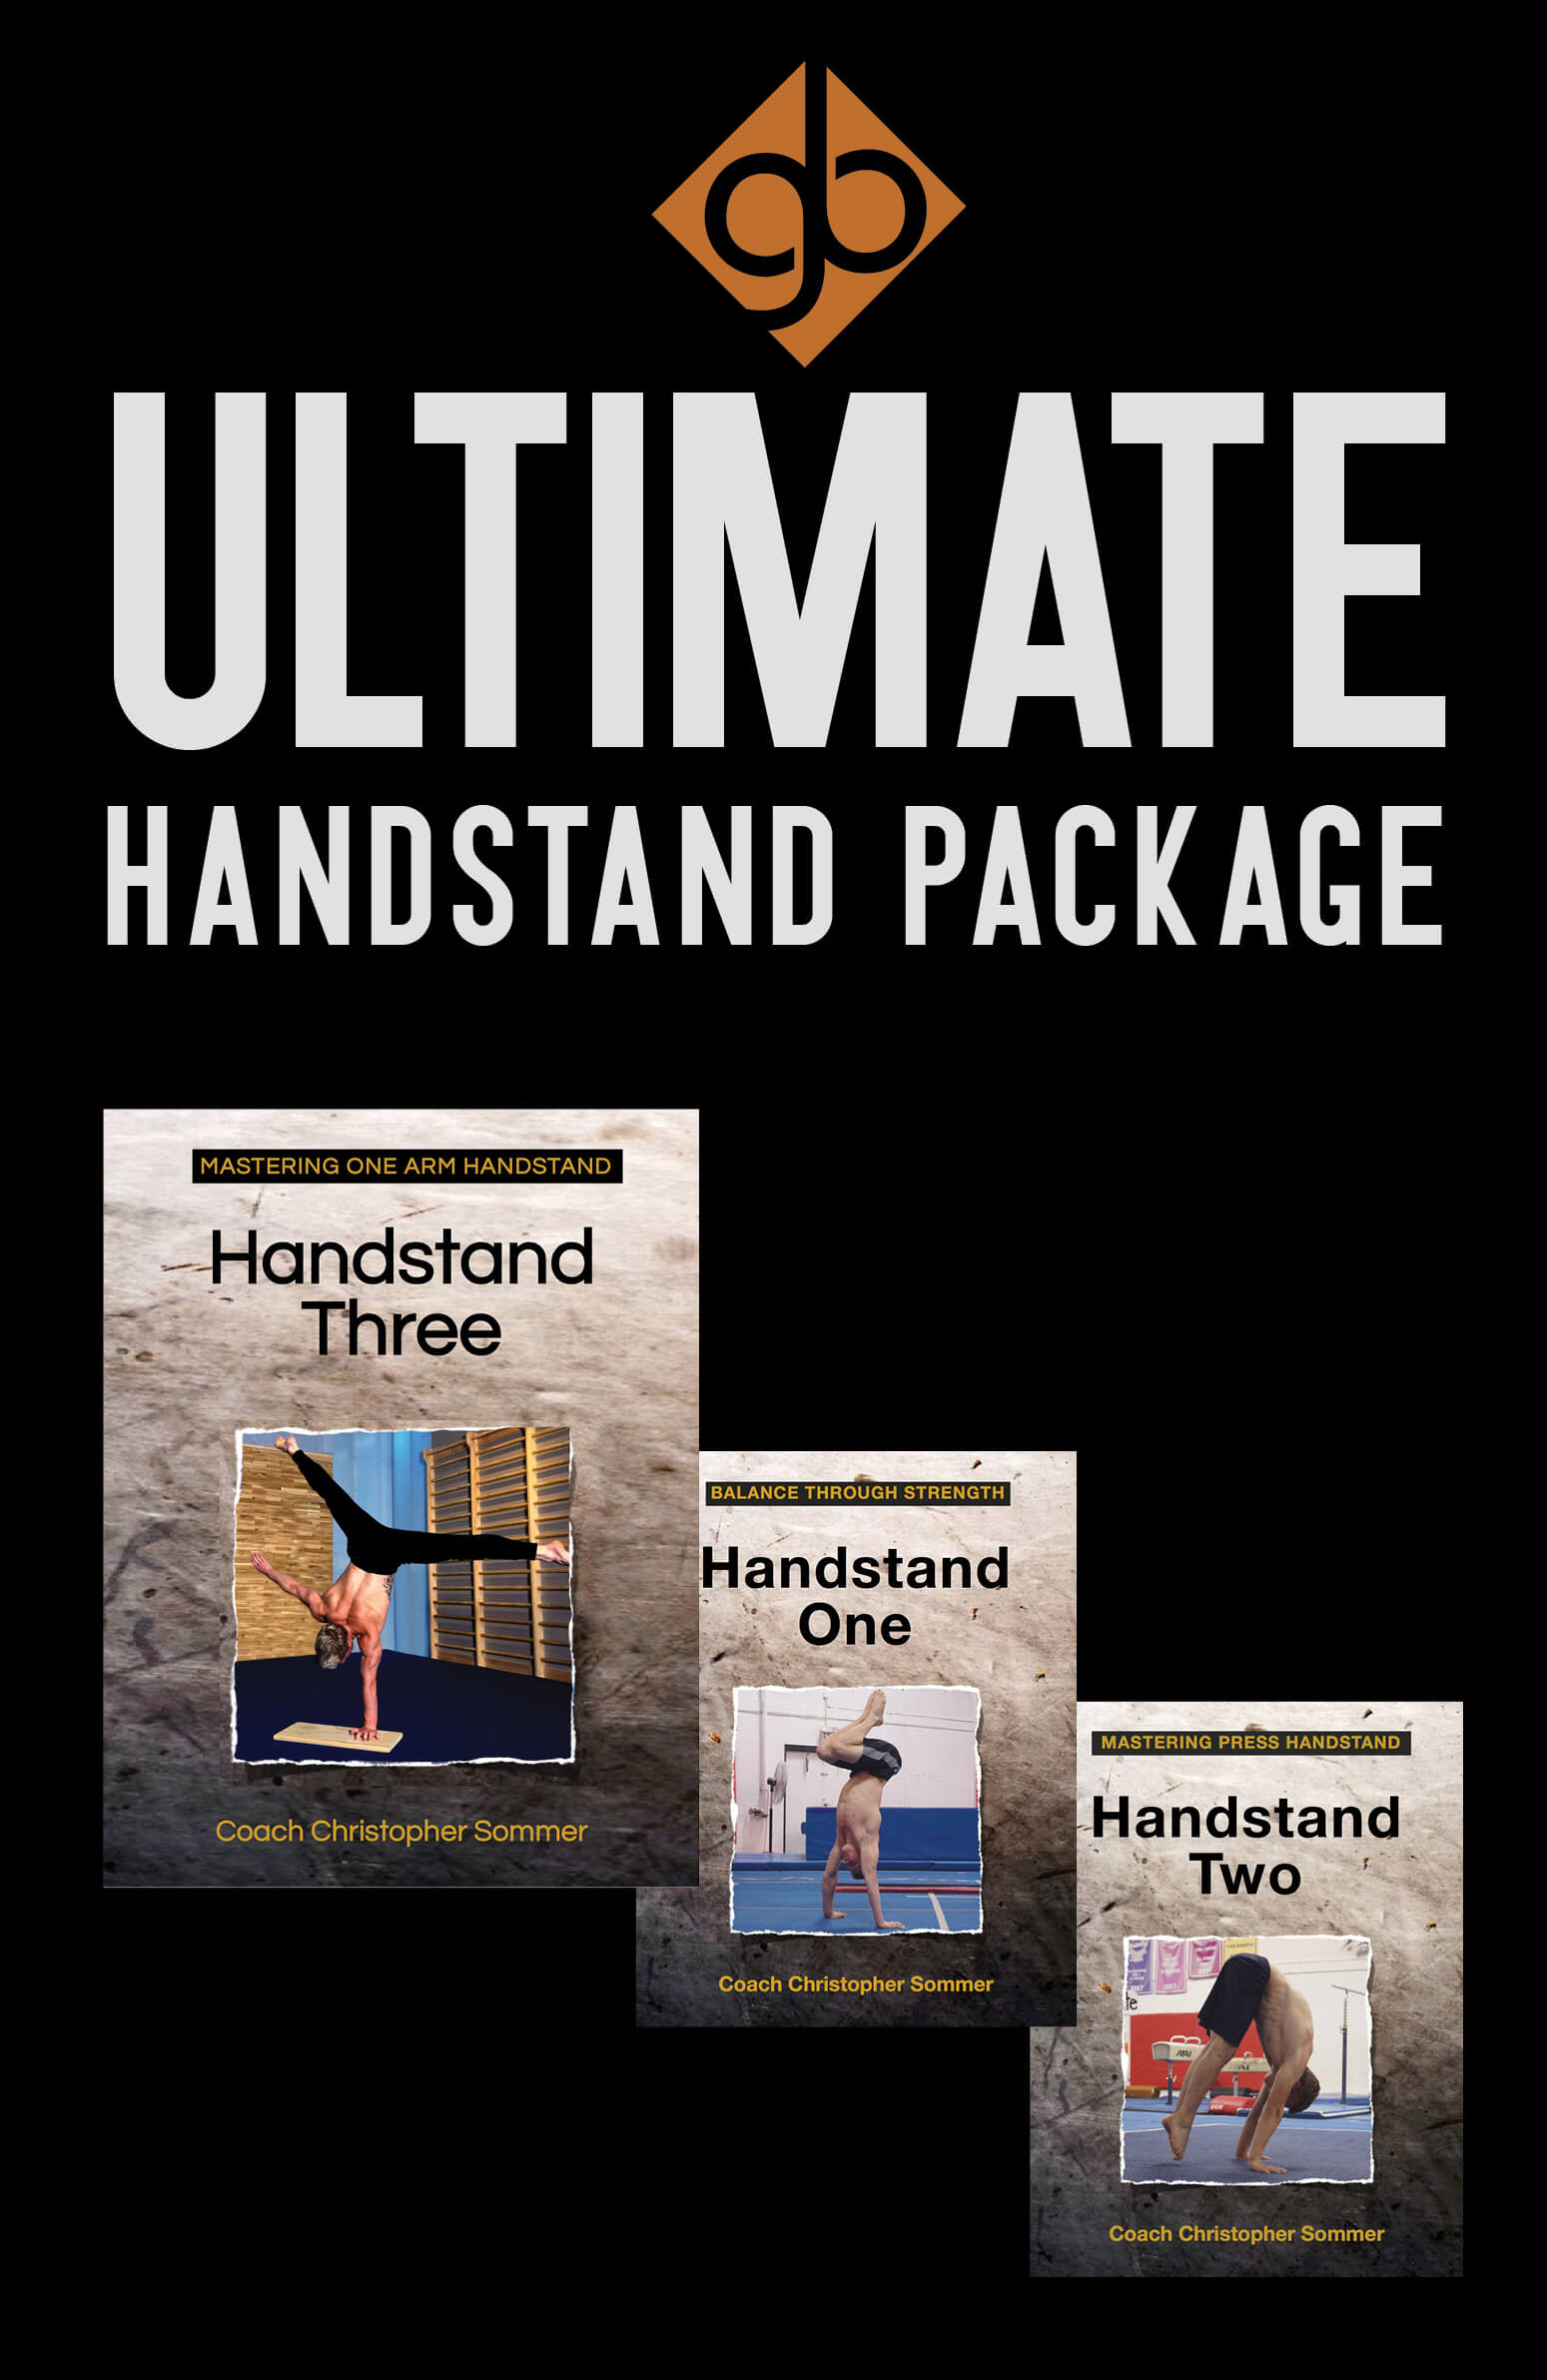 GB handstand package